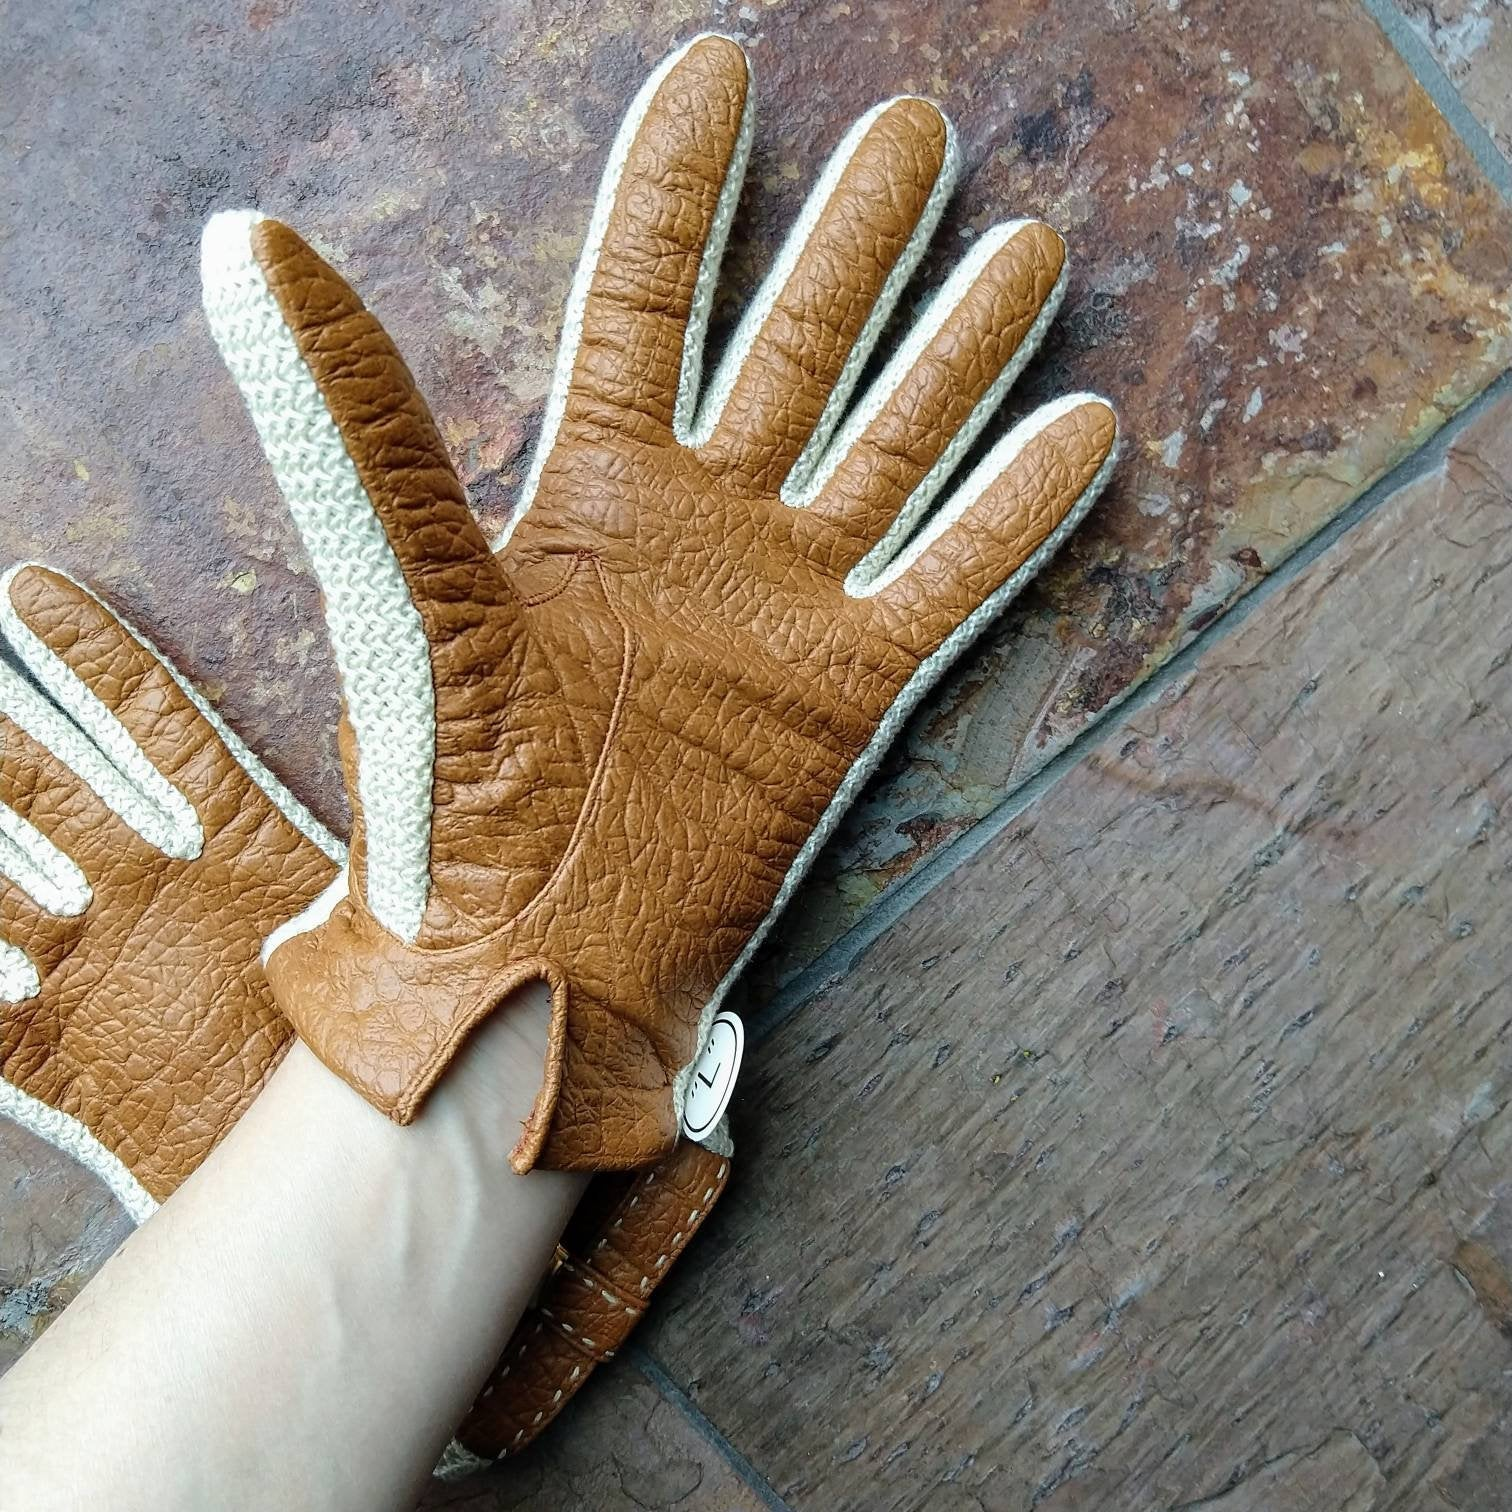 1970s DEADSTOCK DRIVING GLOVES 70s faux leather